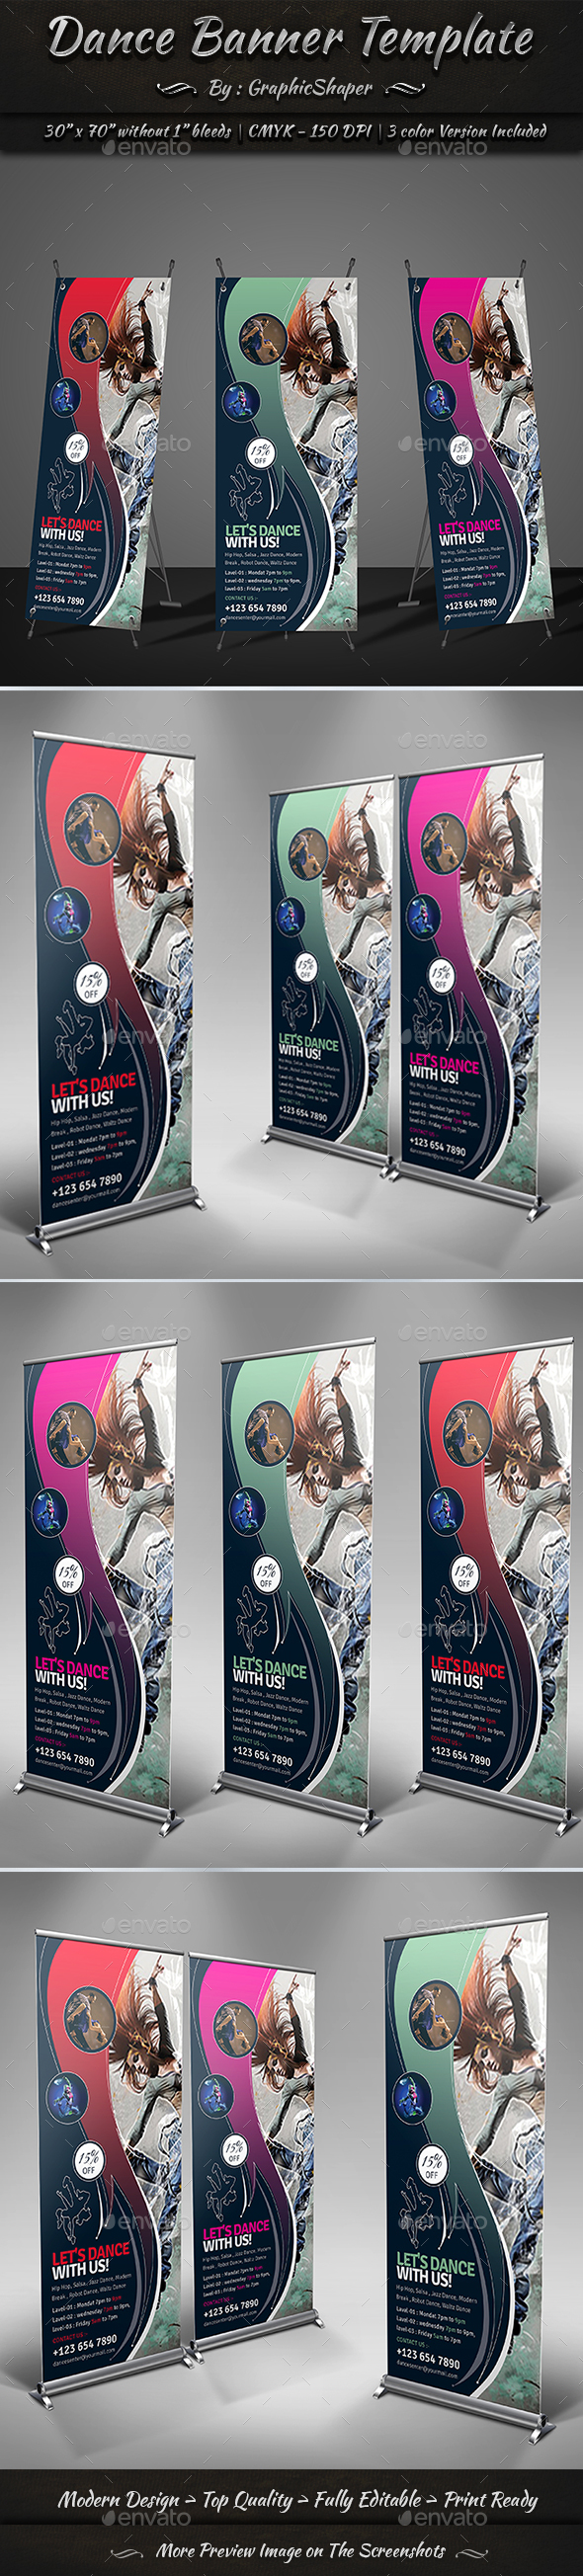 Dance Banner Template - Signage Print Templates